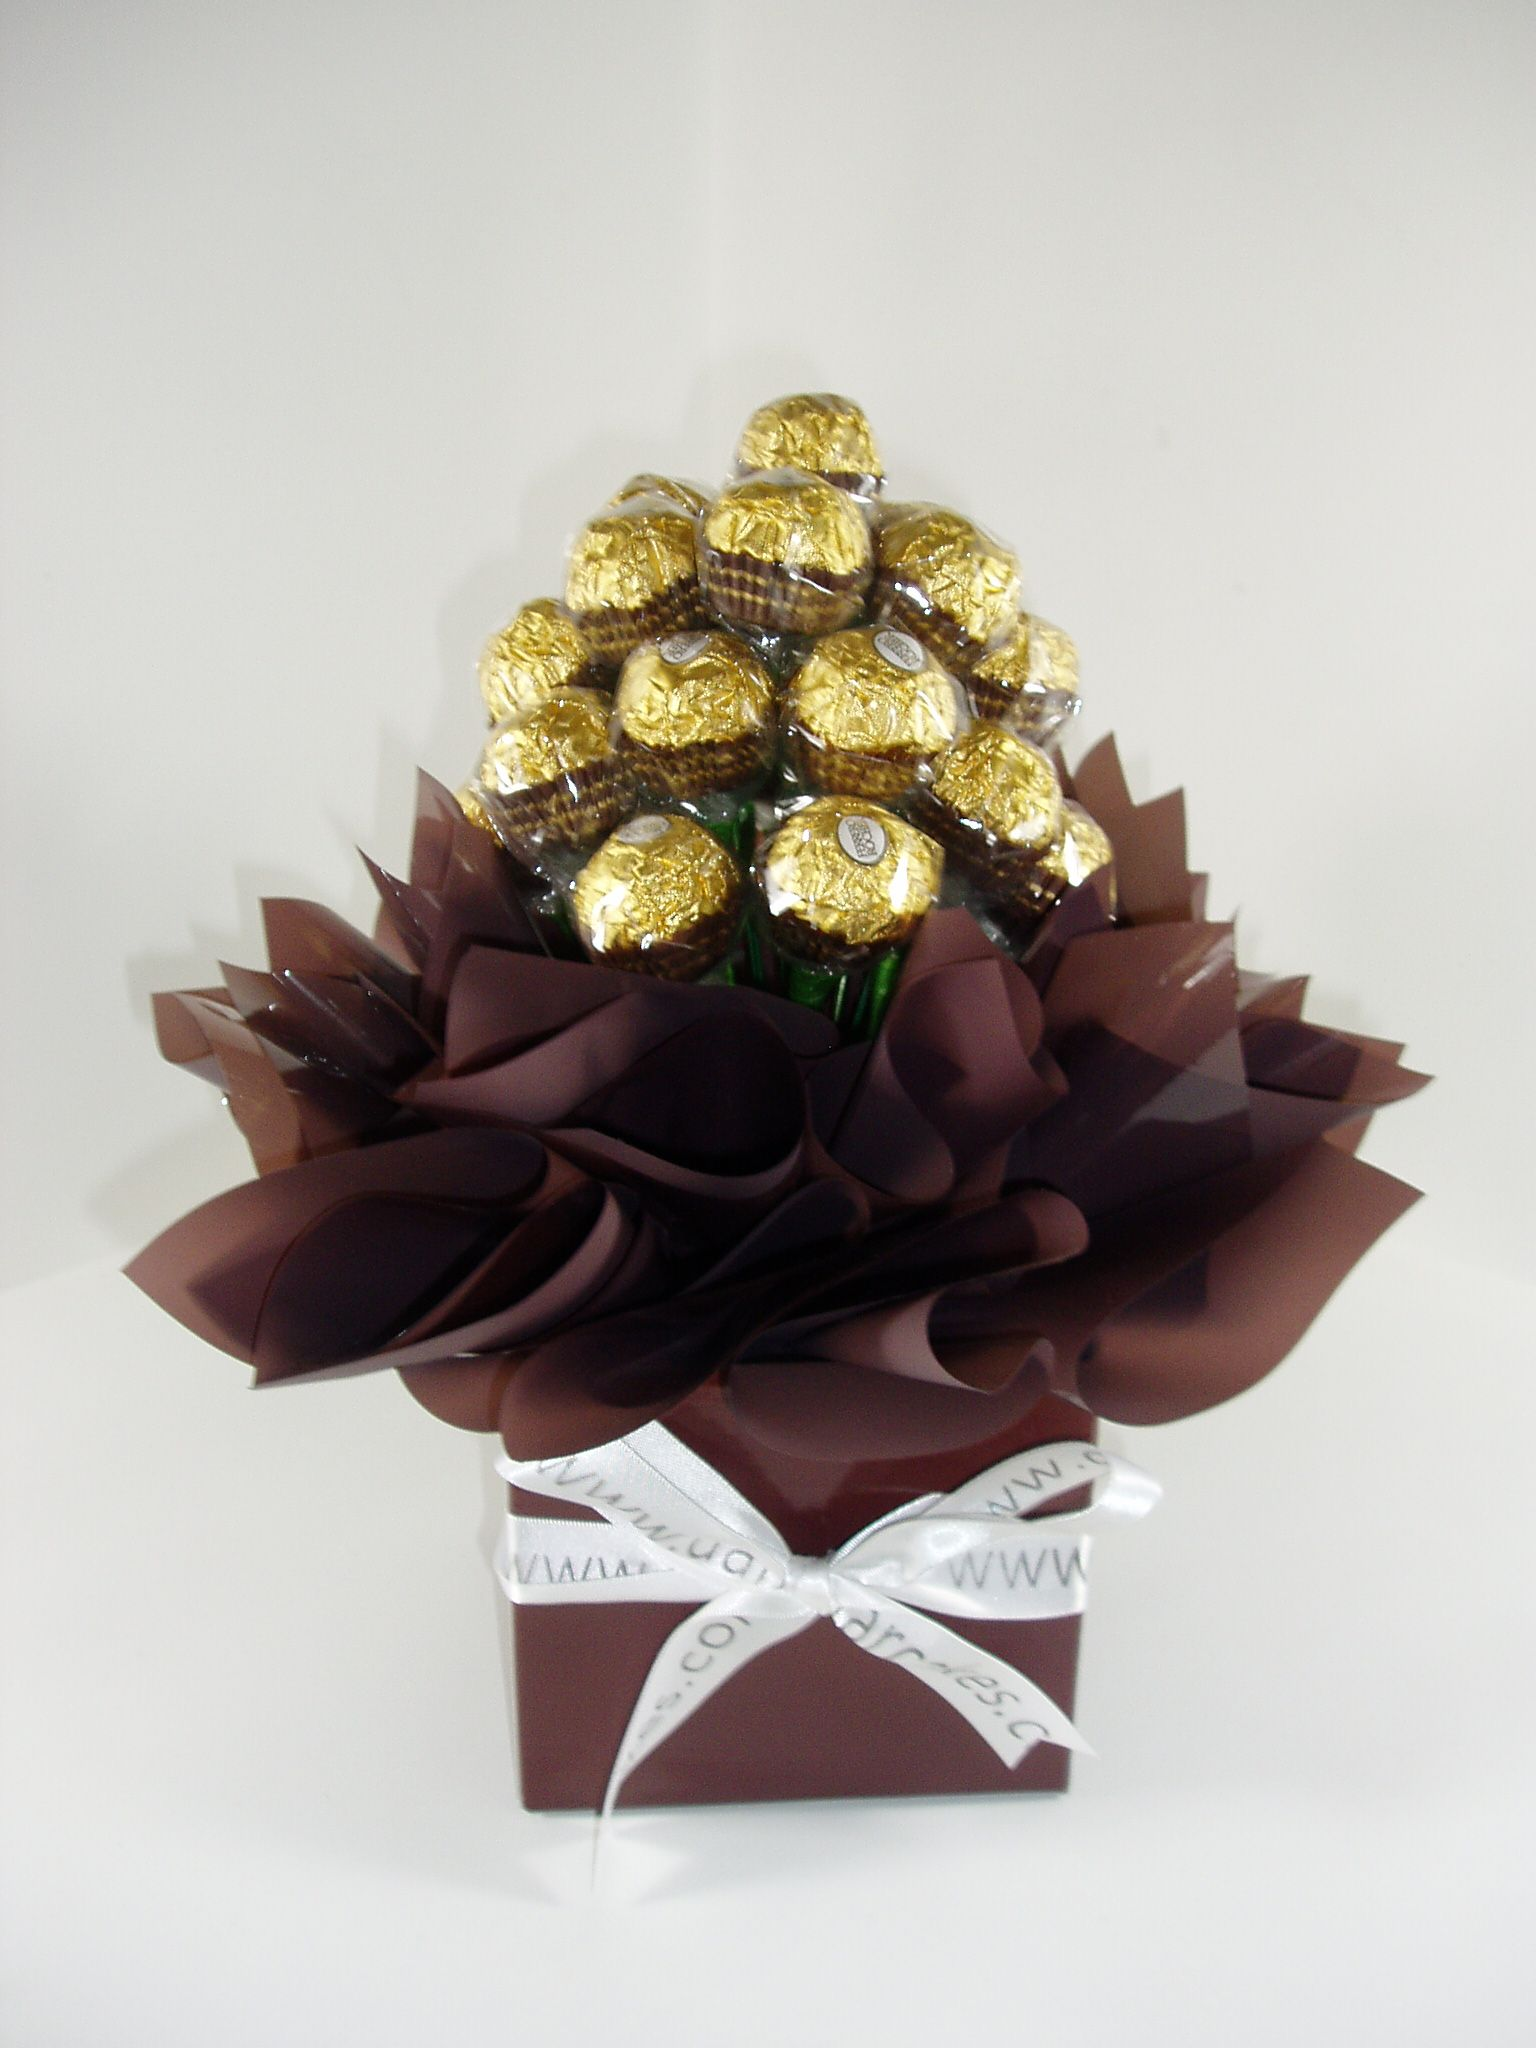 Chocolate bouquet on pinterest candy flowers bouquet of chocolate - Chocolate Chocolate Bouquet